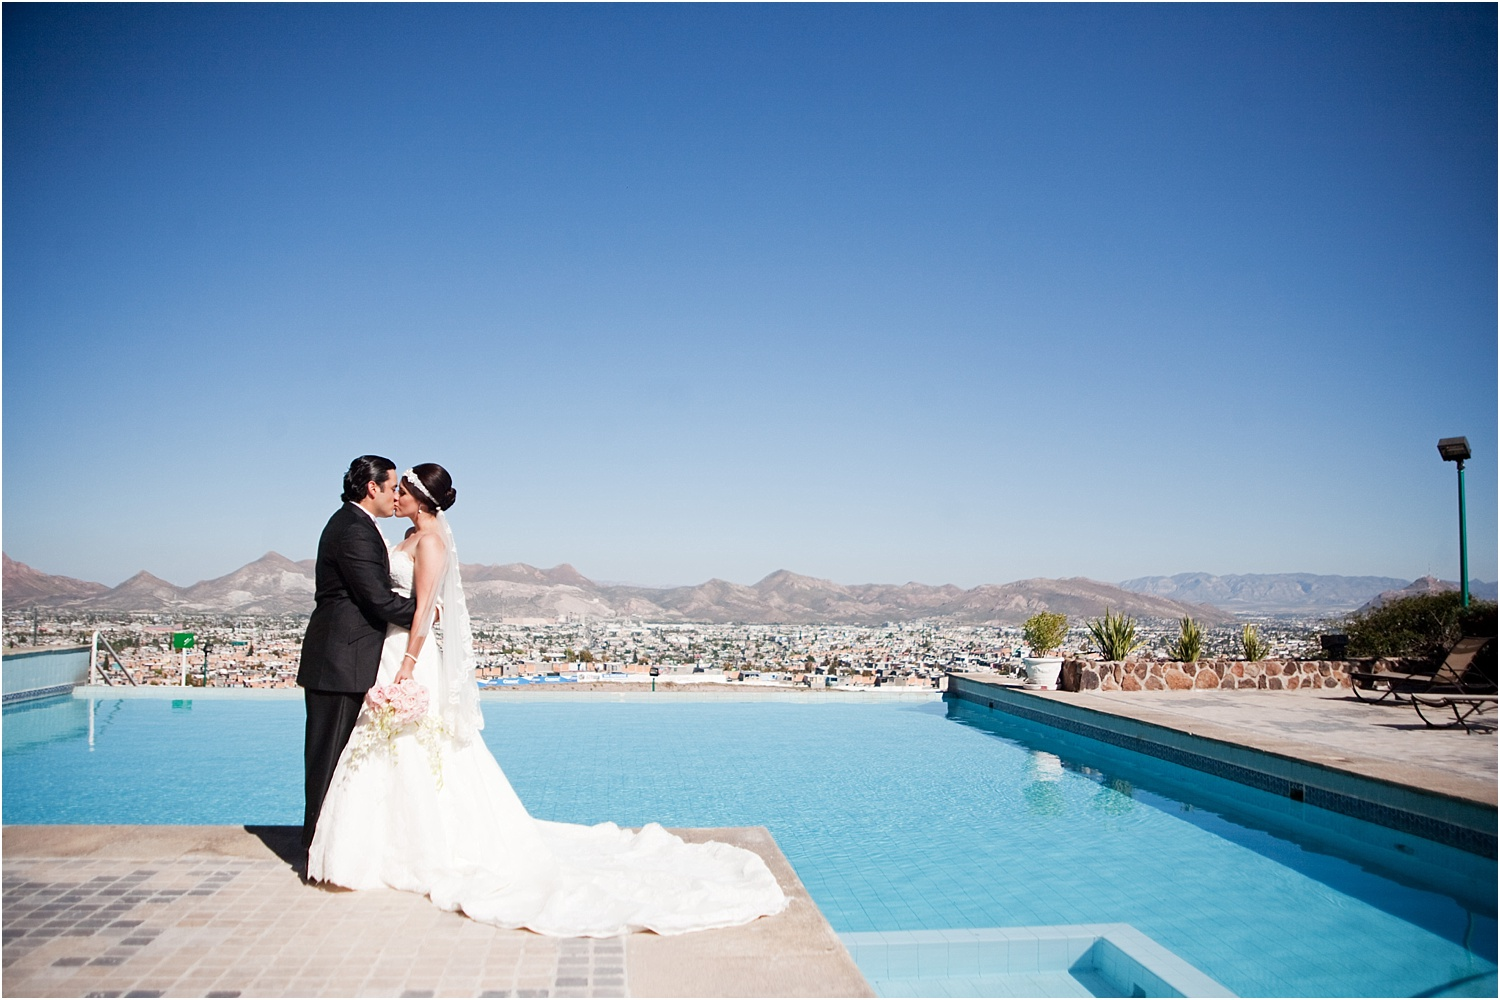 the bride and groom are kissing by the pool - How to make the portrait photograph in the midday sun